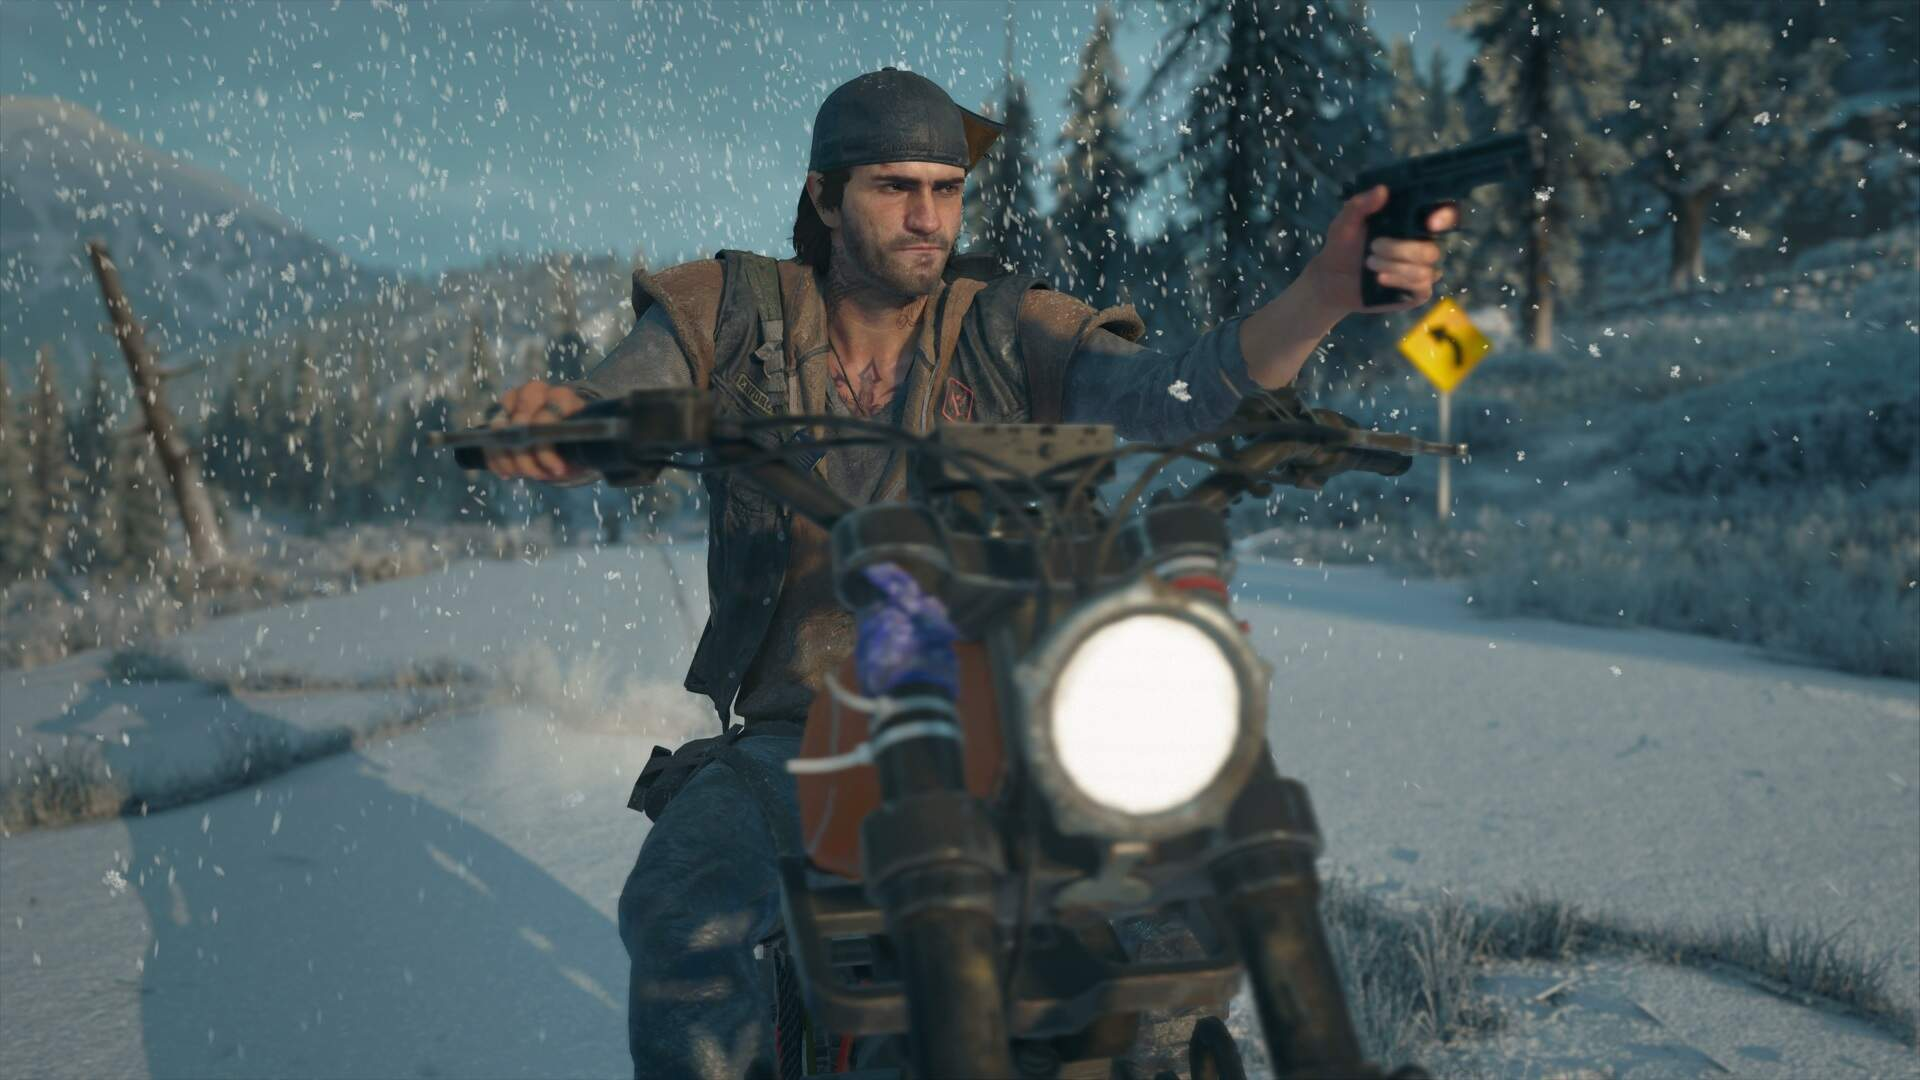 Days Gone Horde Locations: Tips On Taking Down a Horde